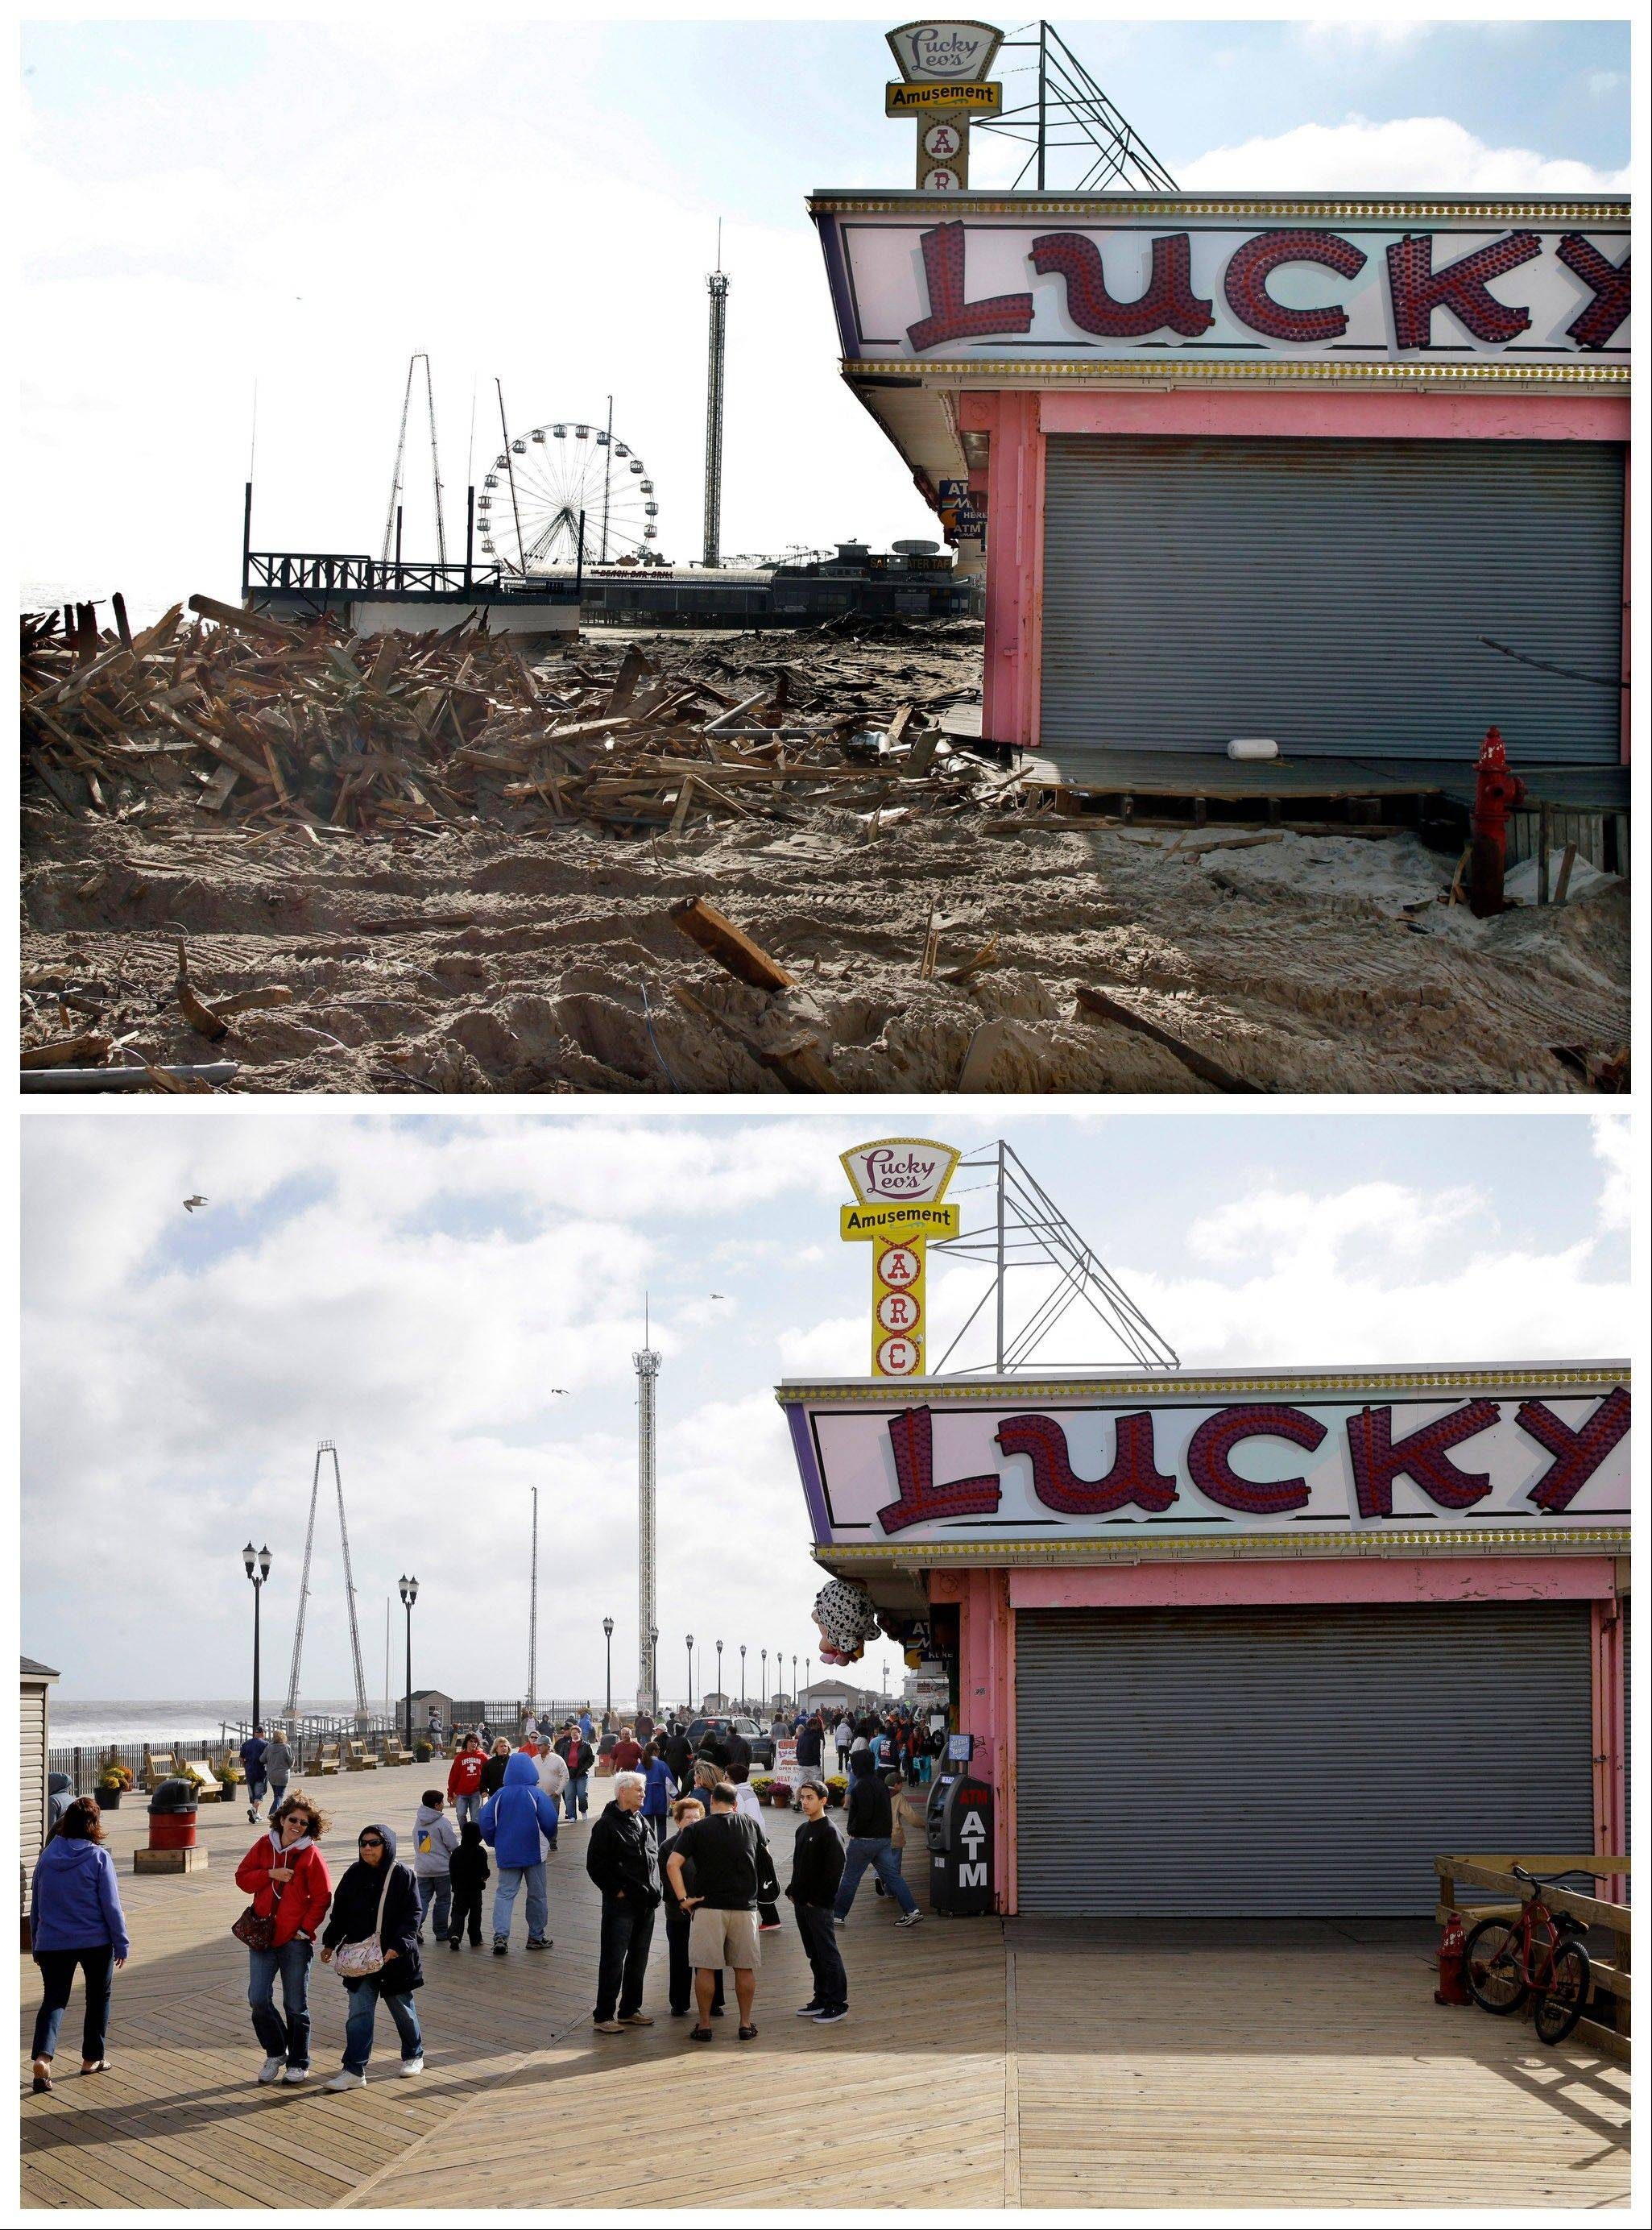 This combination shows Thursday, Nov. 22, 2012 and Sunday, Oct. 13, 2013. Debris left by Superstorm Sandy, where the boardwalk had been in front of Lucky Leo's arcade in Seaside Heights, N.J., and people walking at the rebuilt area nearly a year later.